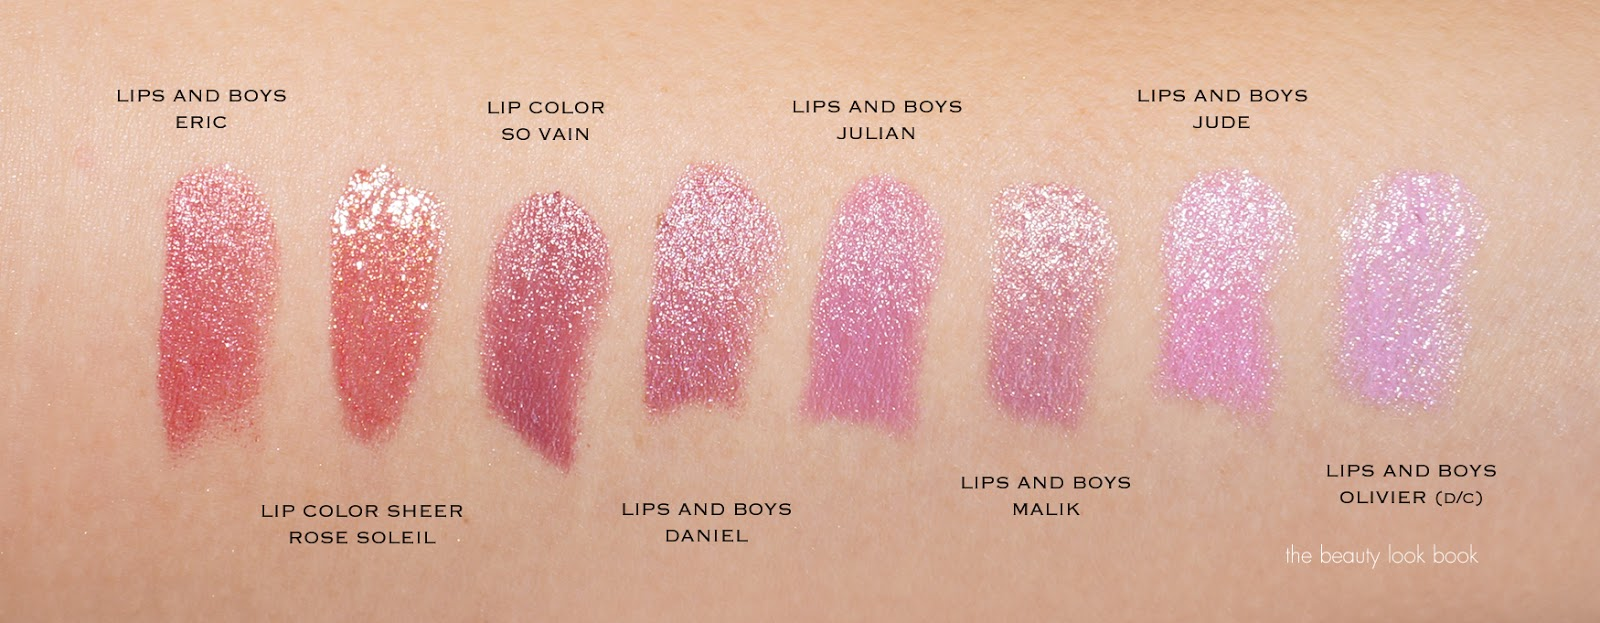 eb26603c599 Lip Color Sheer in Rose Soleil